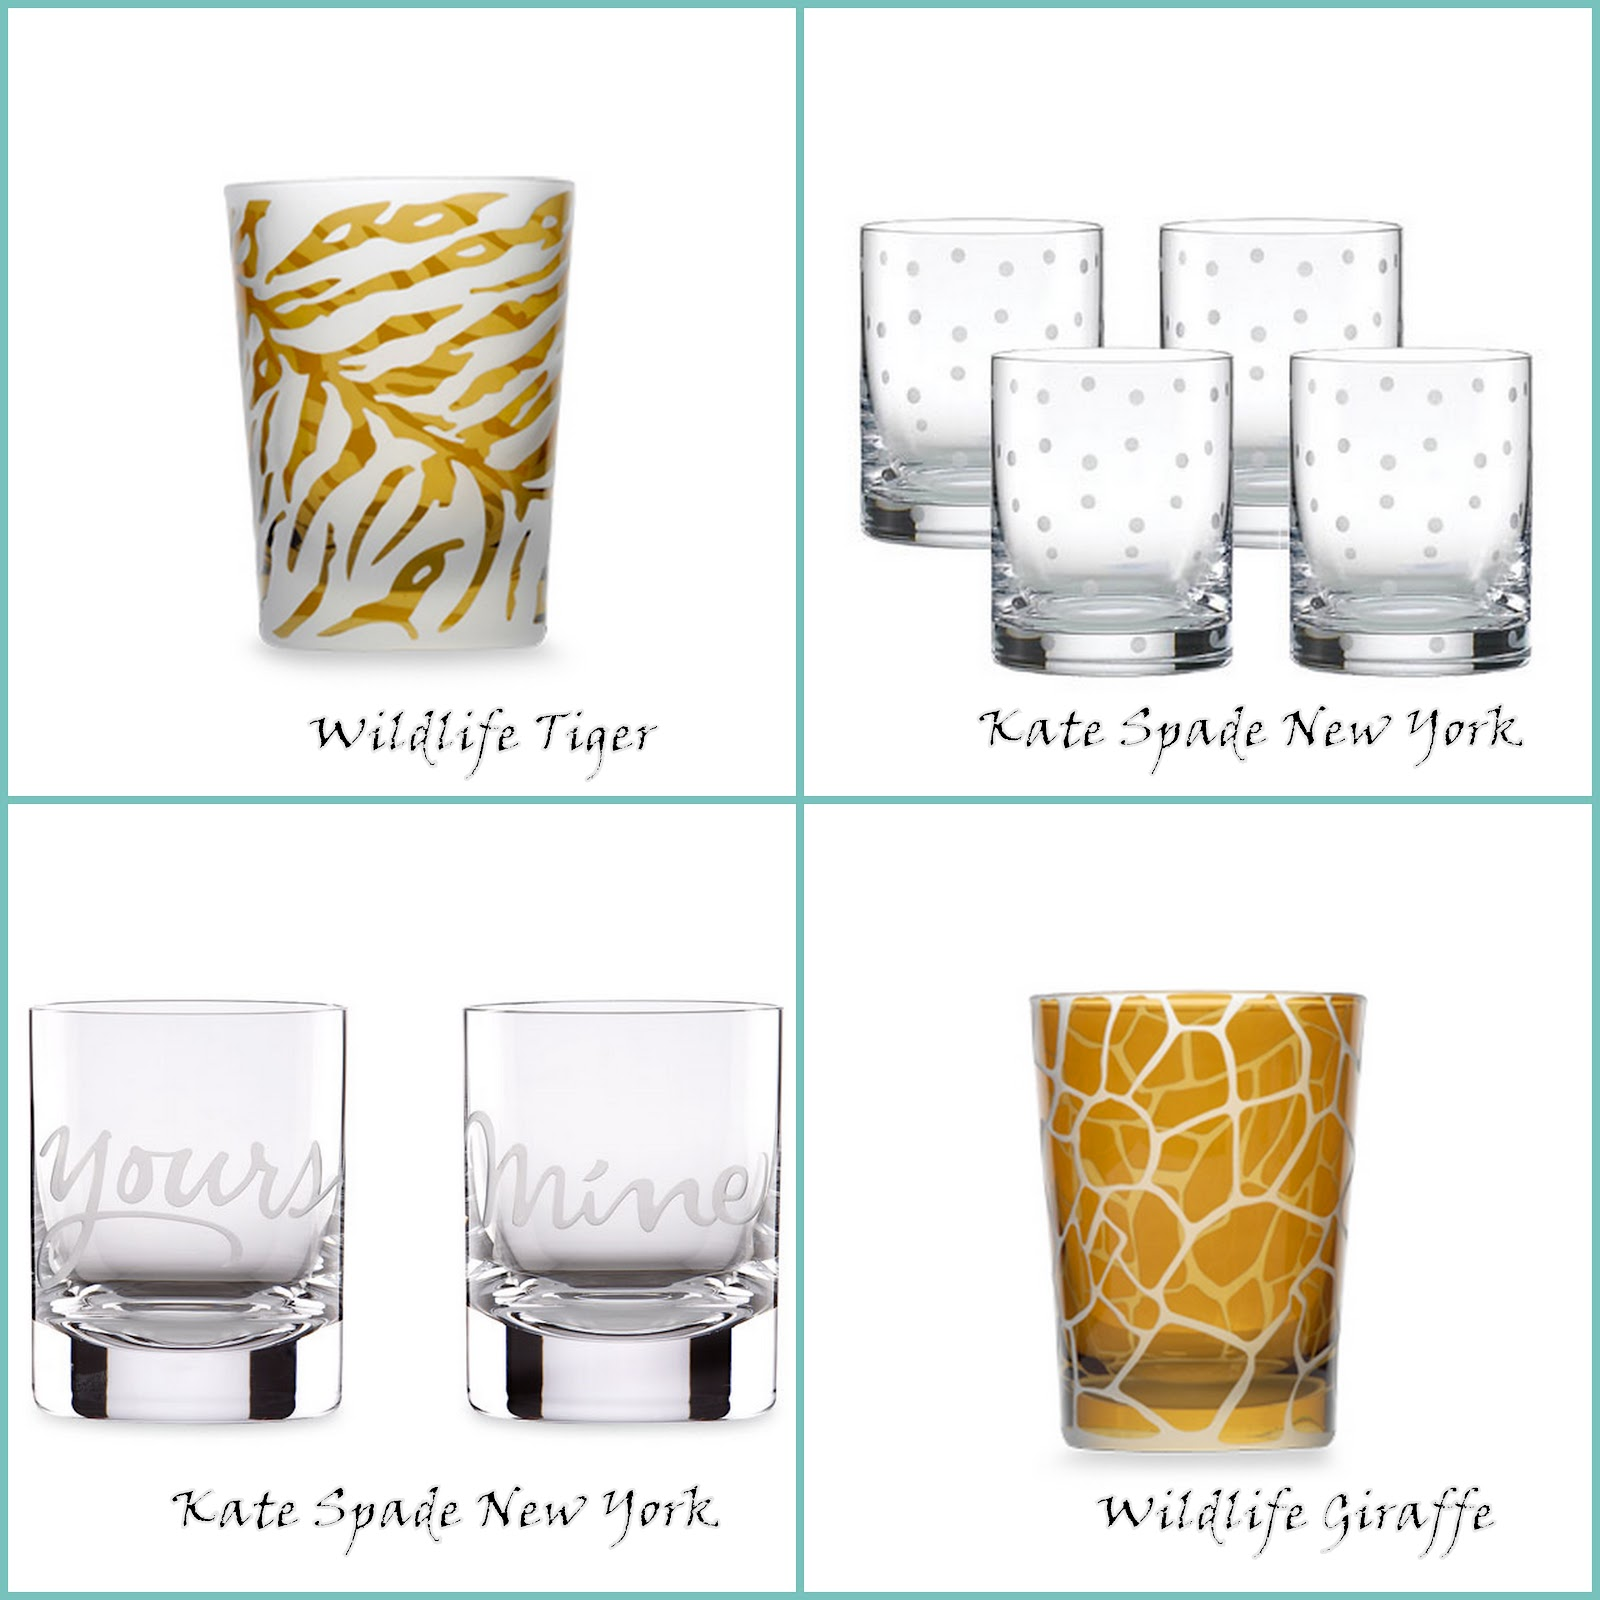 The Set Above Is Made By TAG, Which For The Most Part Carries A Great  Product. Let Me Be Clear, I LOVE TAG!! However, This Barware Has To Go!